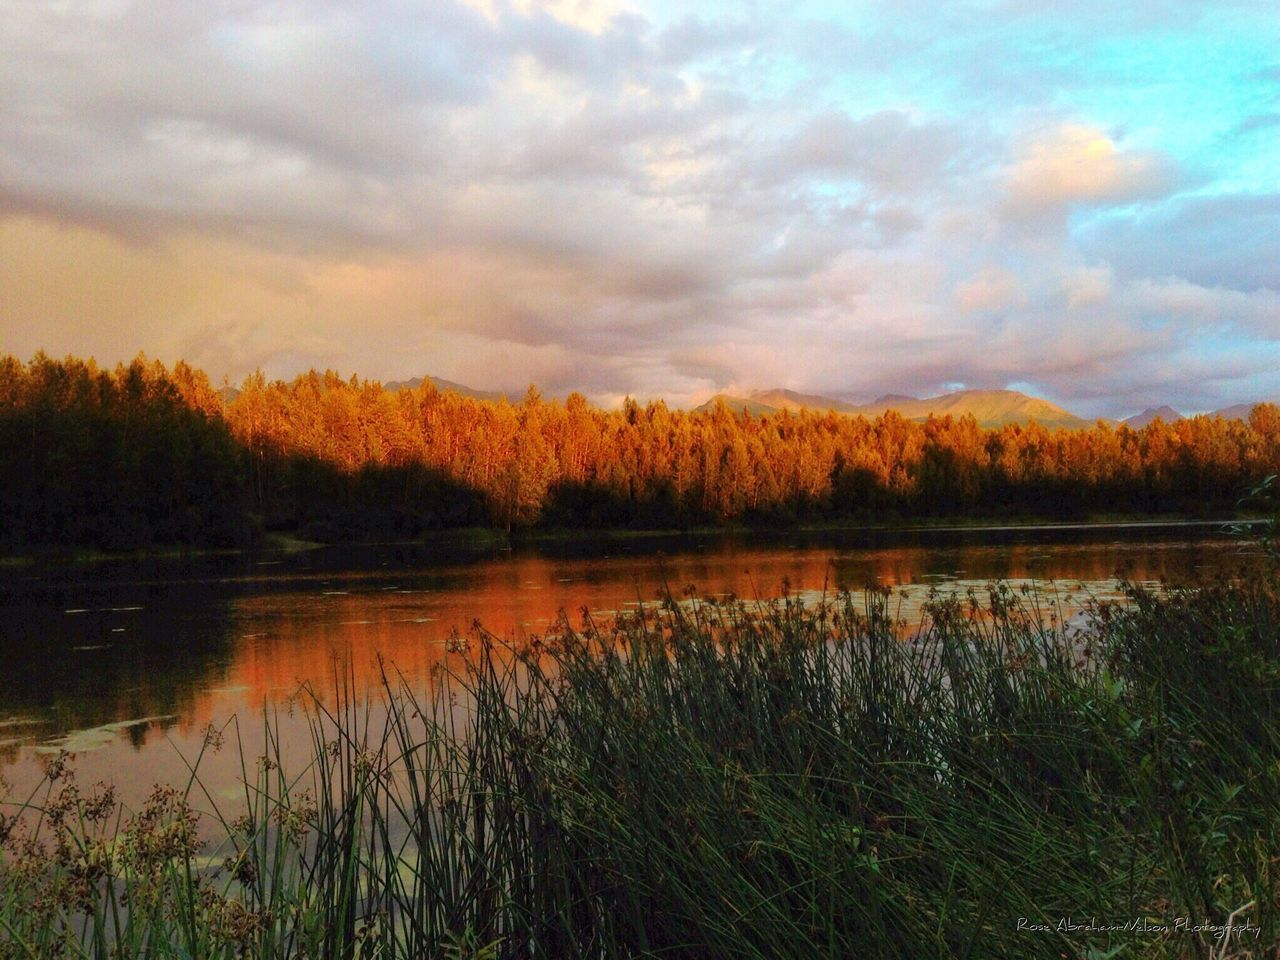 Cheney lake early fall Clouds And Sky Fall Colors Mountains In Background Trees Collection Sunset #sun #clouds #skylovers #sky #nature Beautifulinnature Naturalbeauty Photography Landscape [ [ Reflection In Water Grassflowers